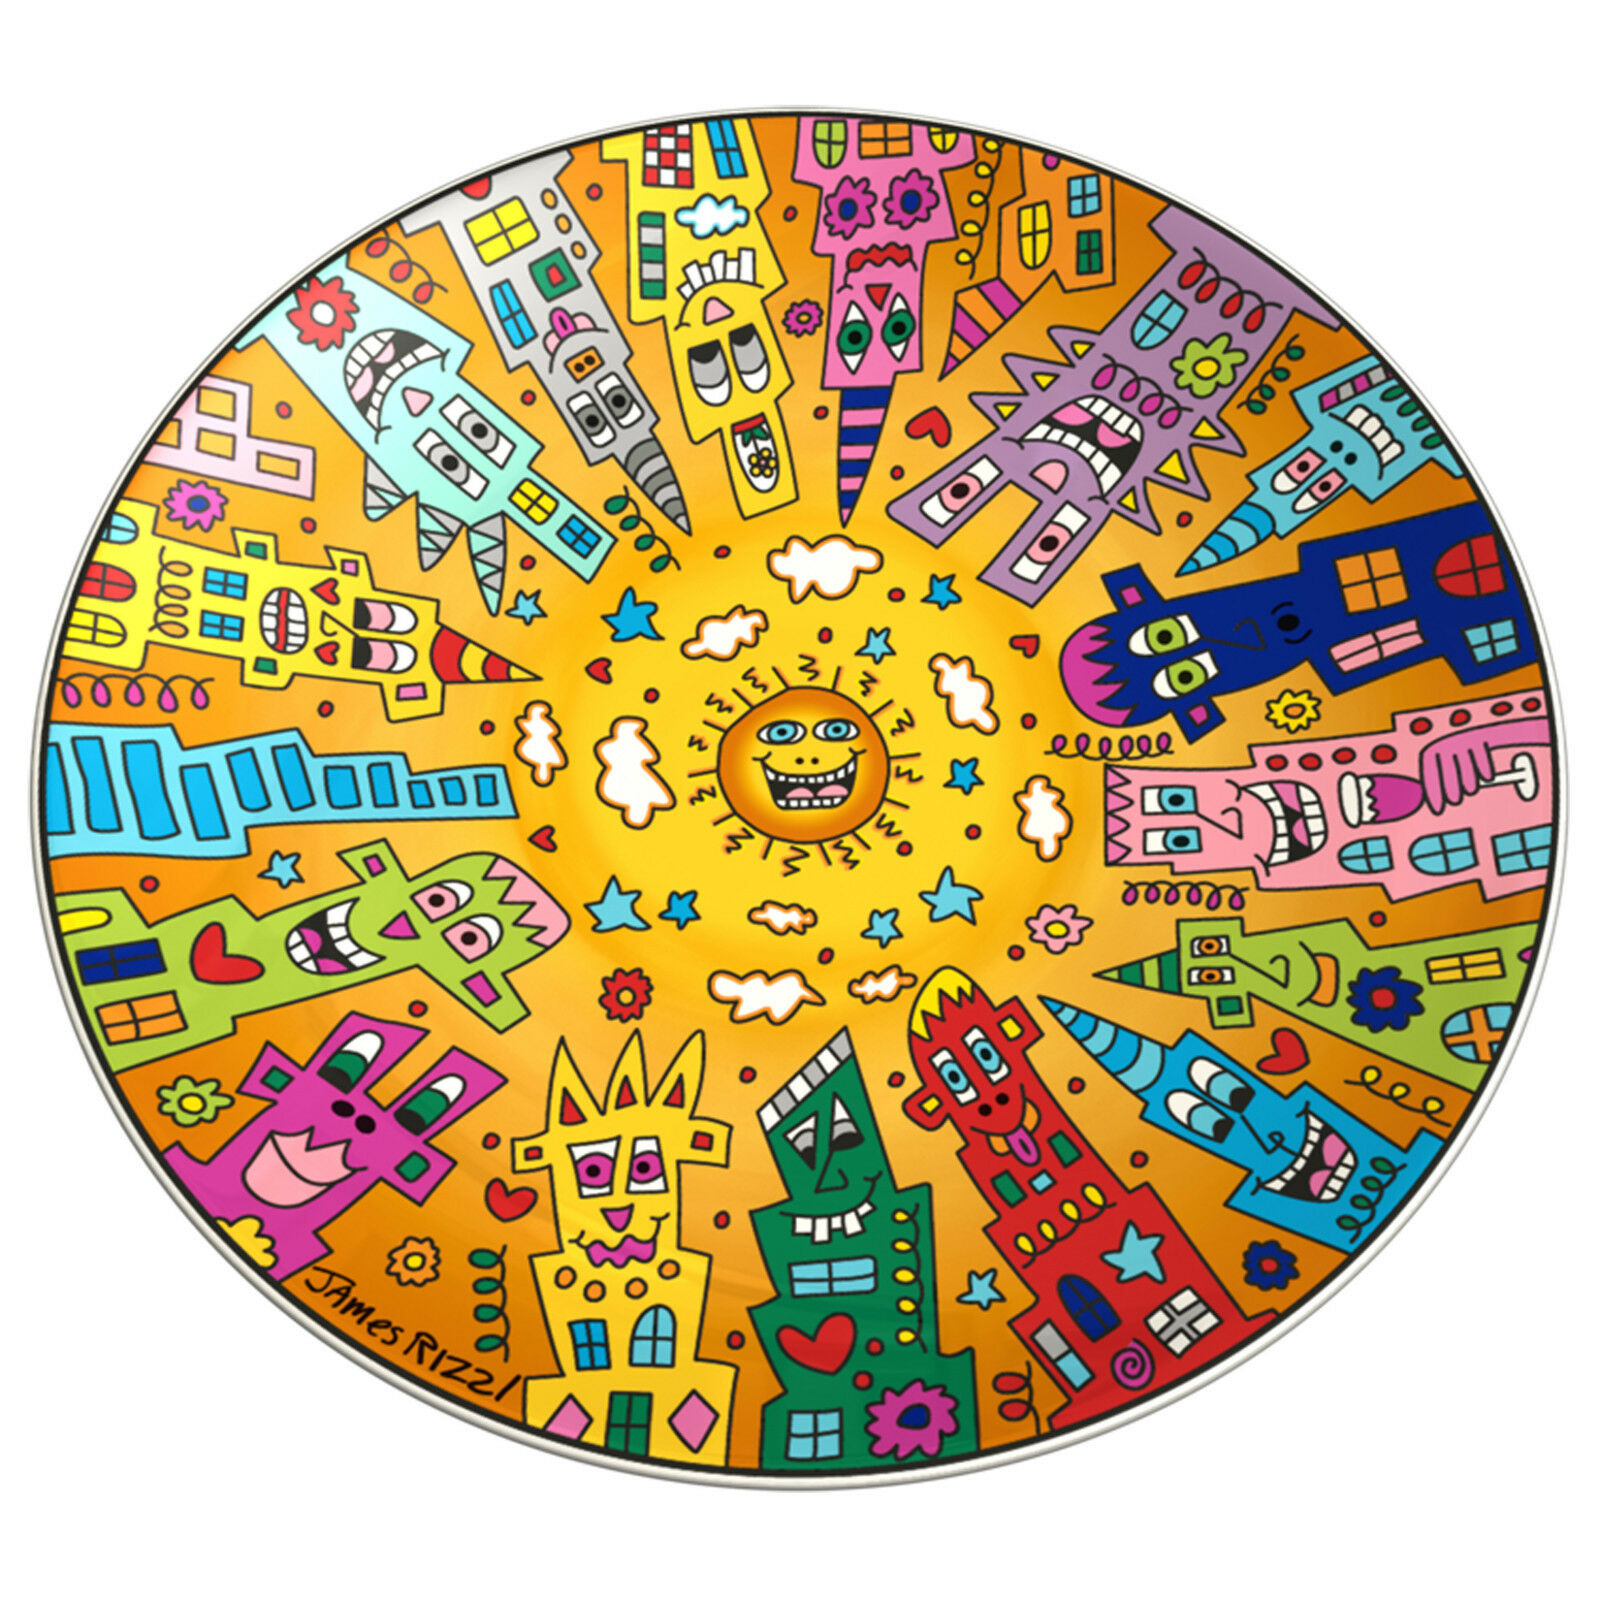 Goebel City Sunset Schale ANGEBOT James Rizzi NEUHEIT 2016 Pop Art Kunst NEU